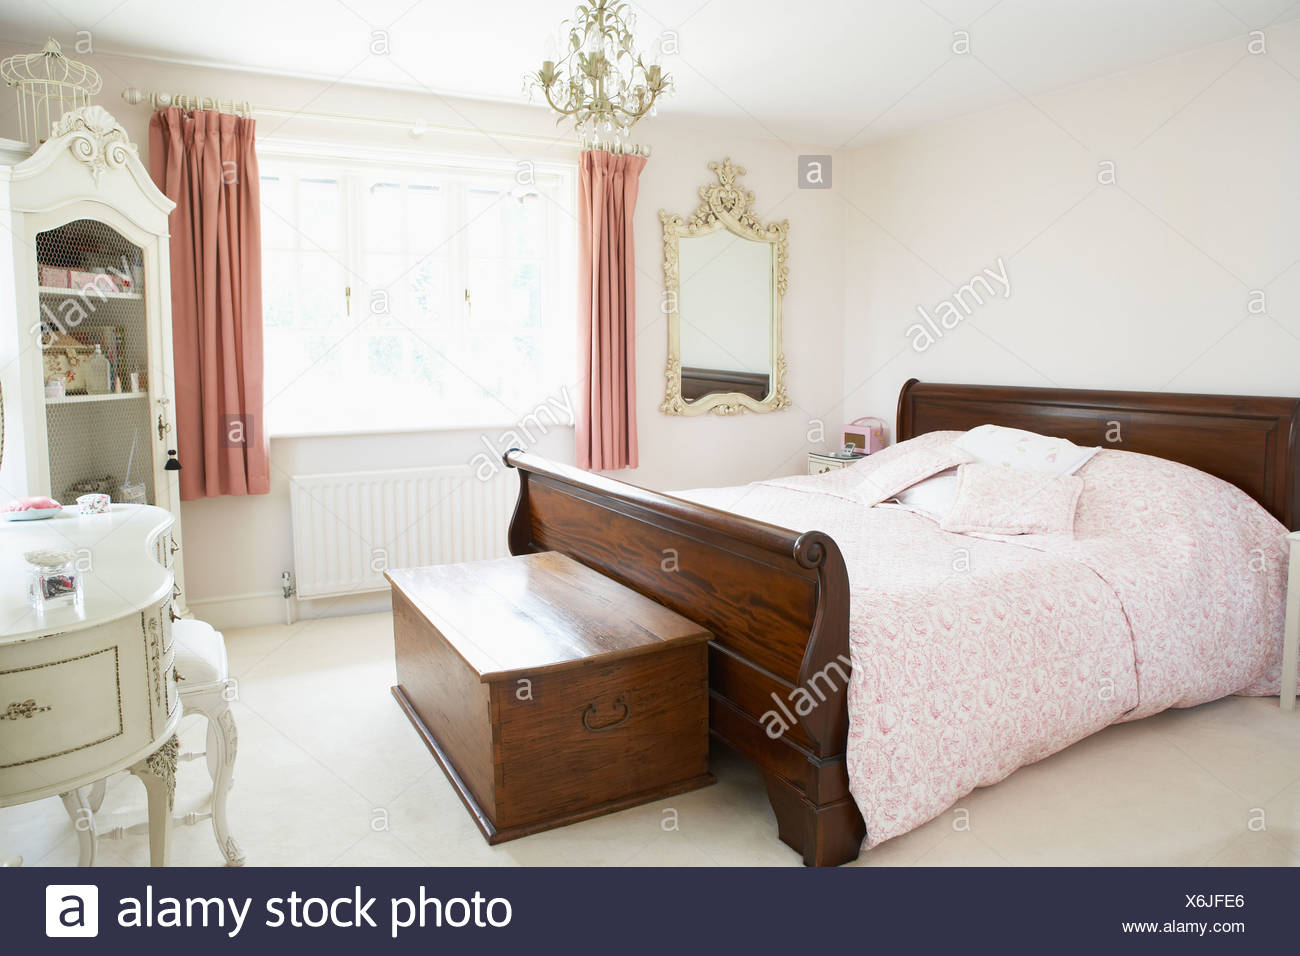 Interior Of Bedroom - Stock Image